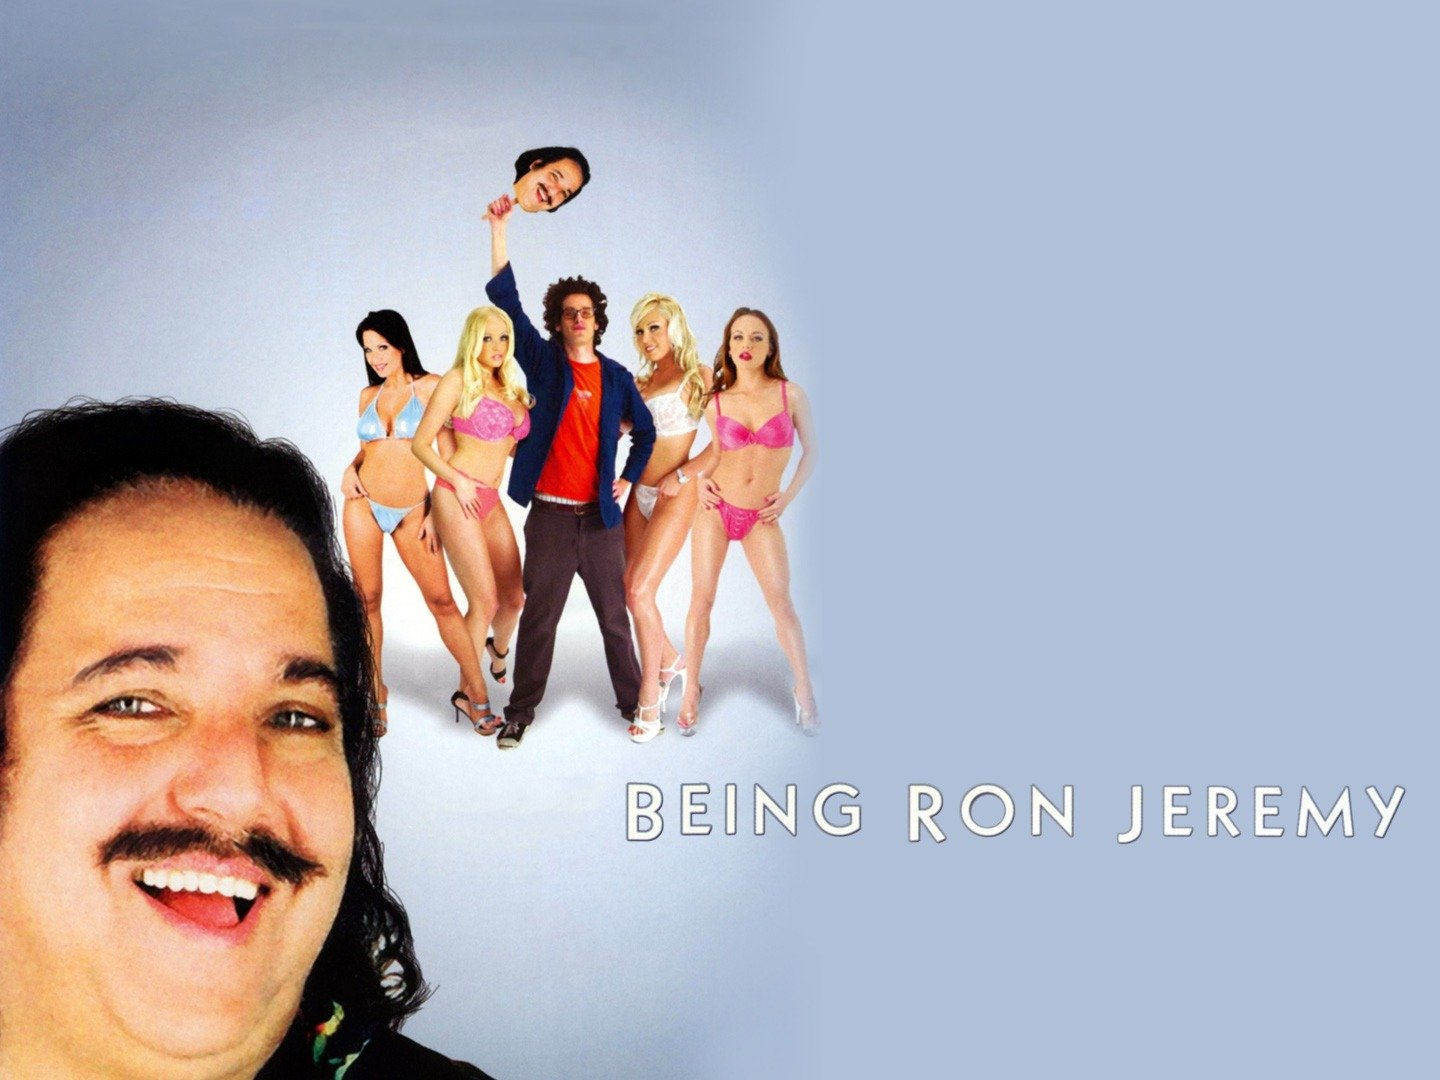 Being Ron Jeremy